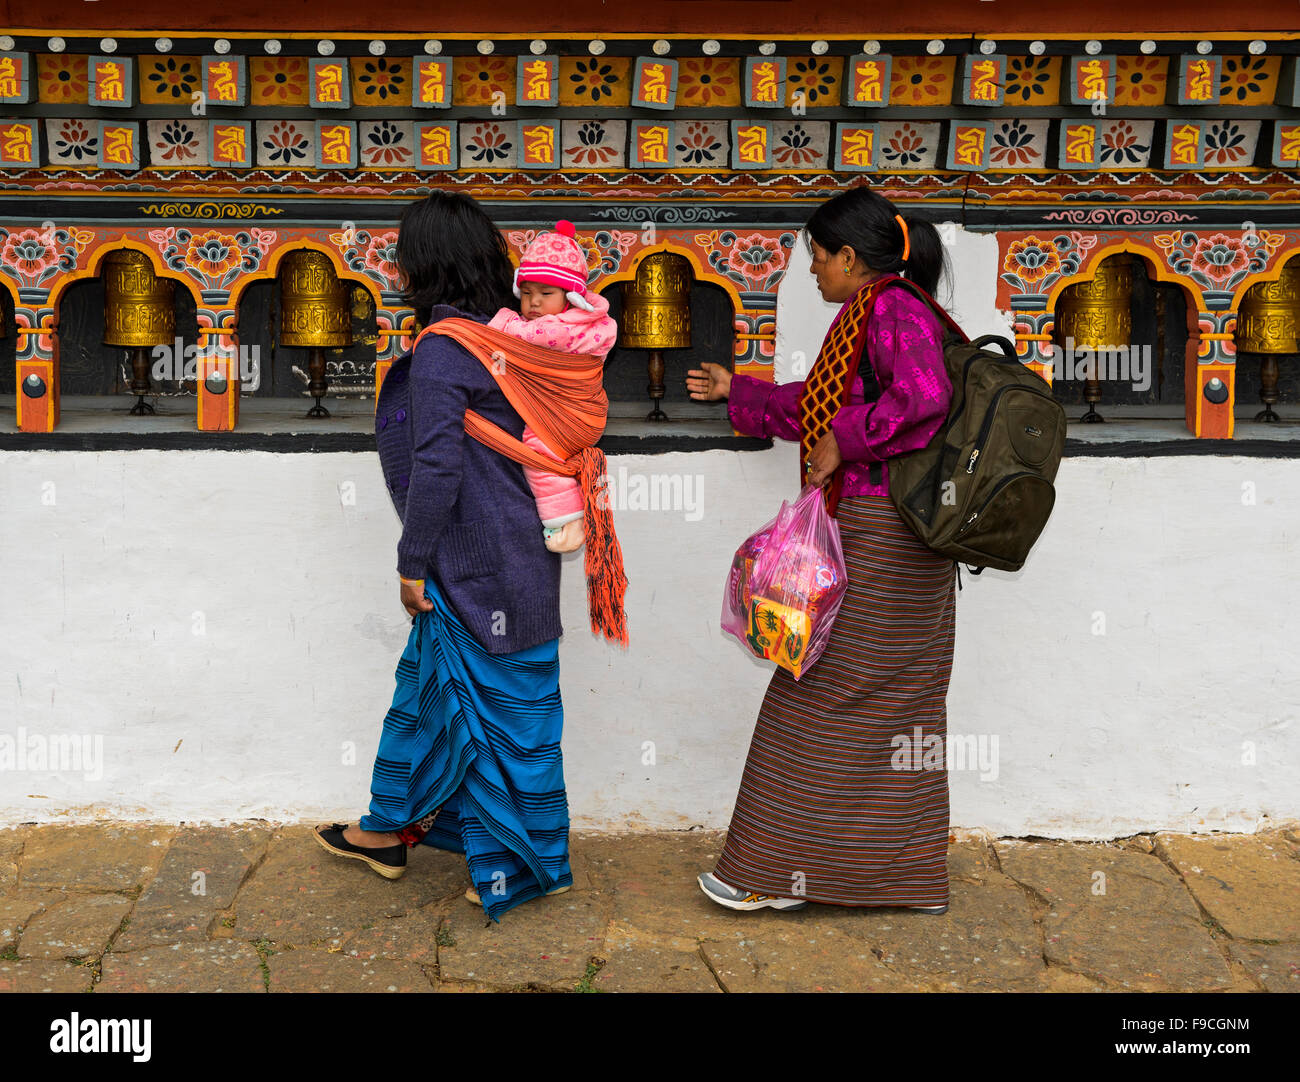 Two local women with a toddler on the back turning prayer mills, monastery Chime Lhakhang near Lobesa, Bhutan - Stock Image